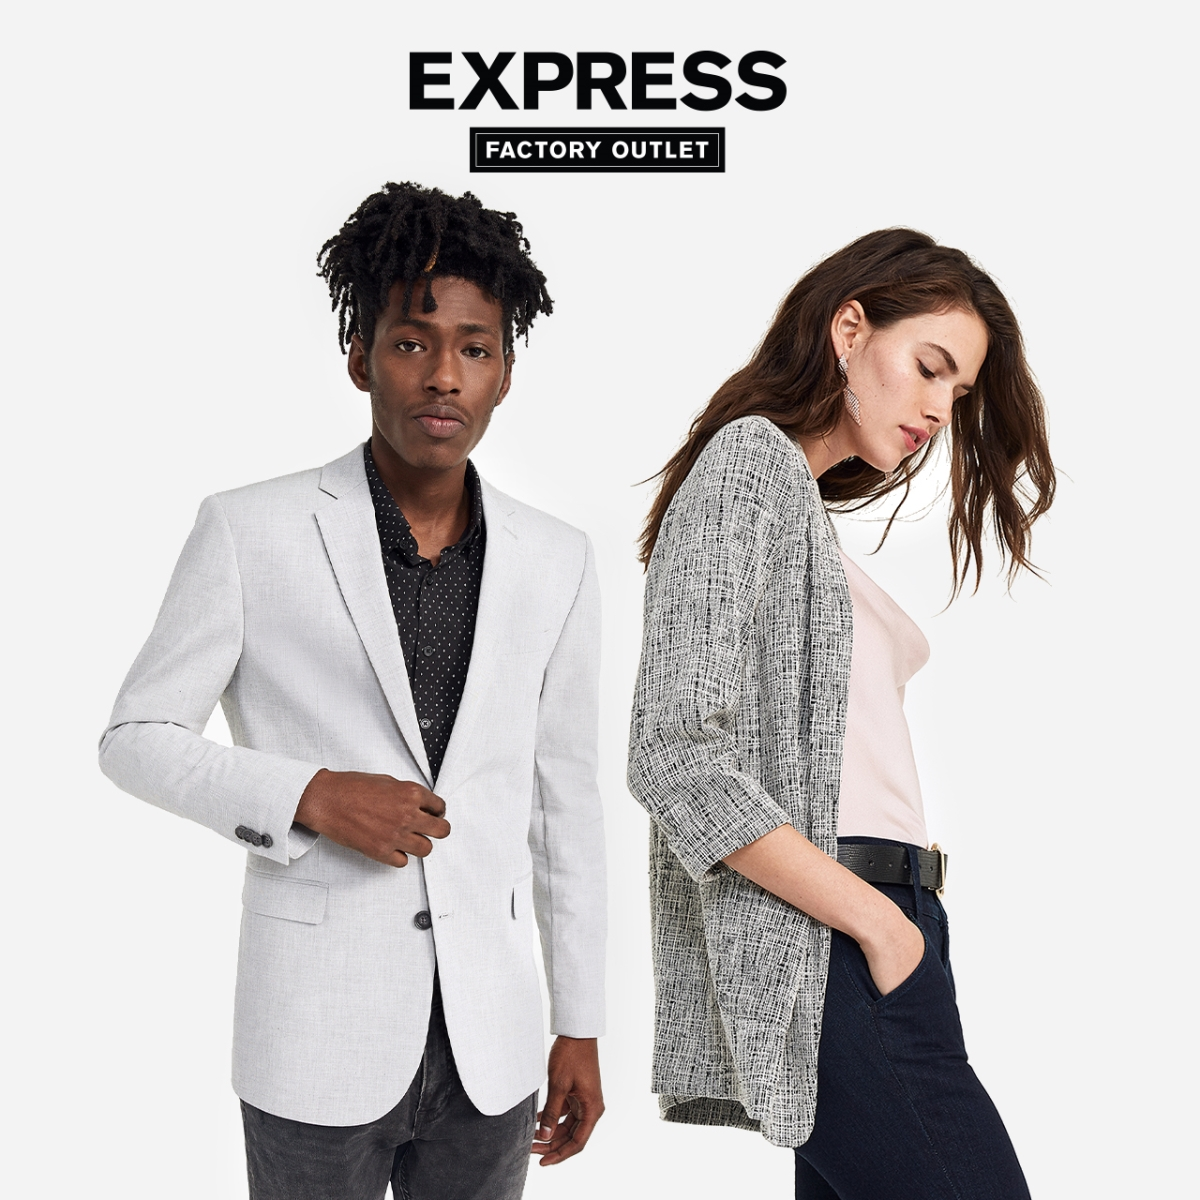 Jeans BOGO $5 from Express